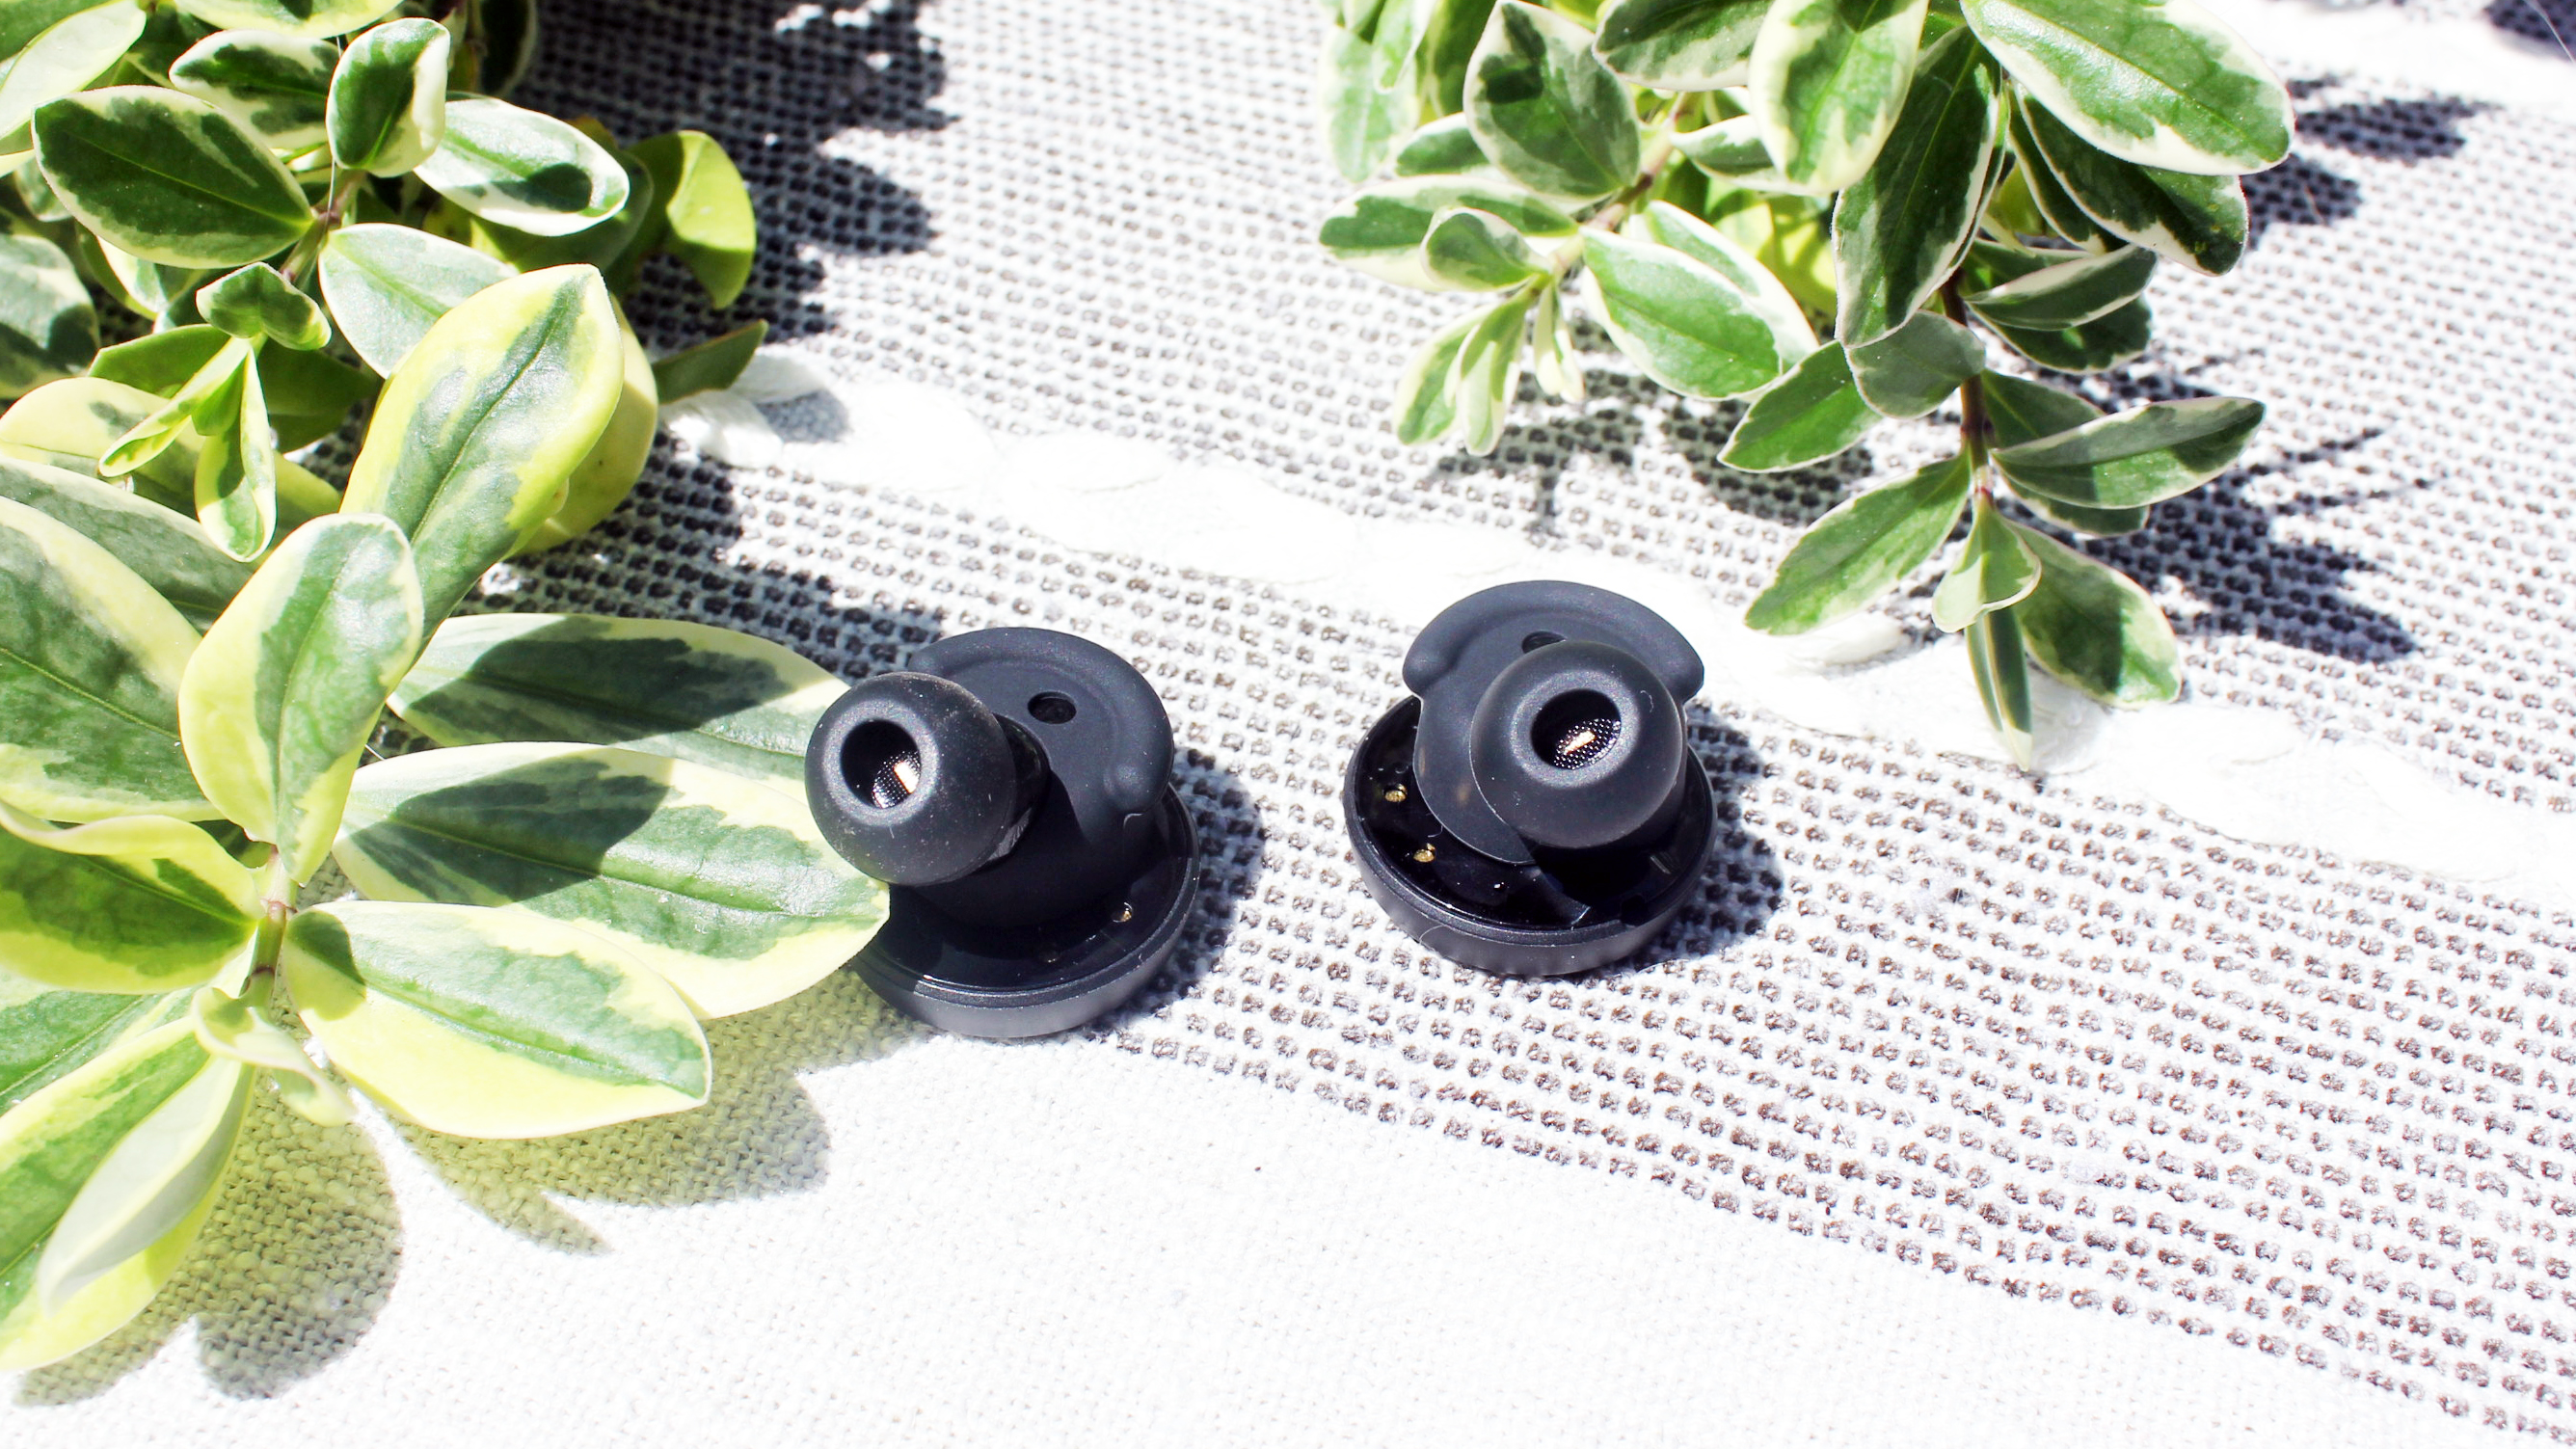 the nurtrue earbuds on a table, showing the underside of the earbuds